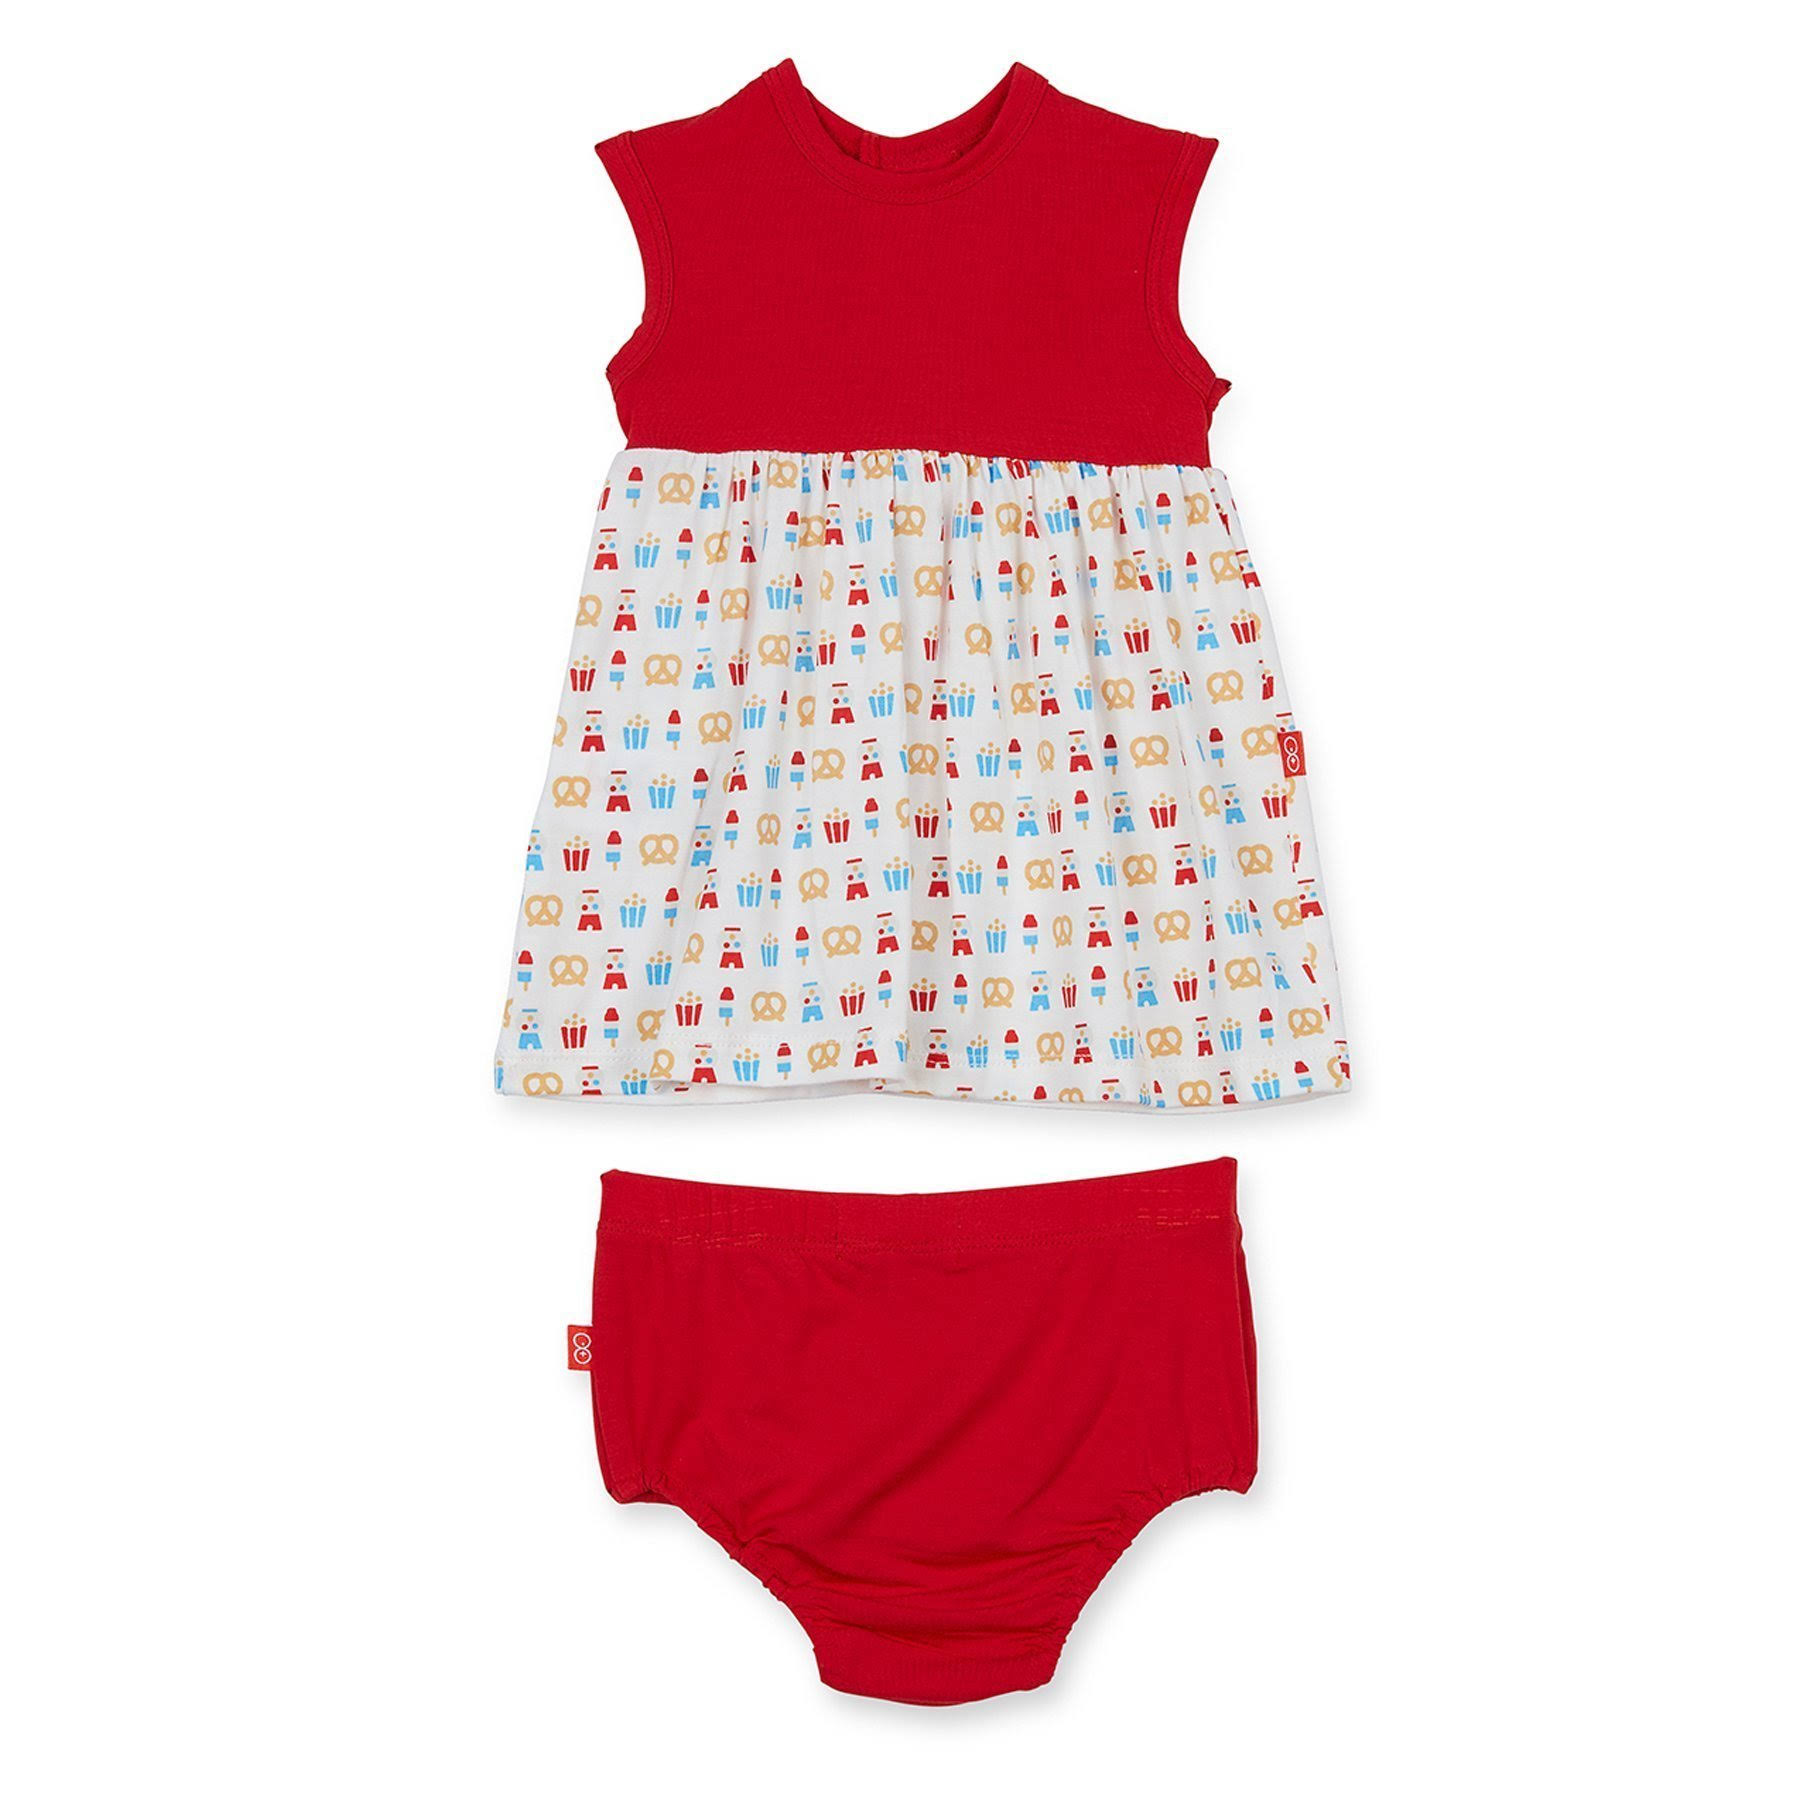 Magnetic Me Summer Fare Modal Magnetic Dress/Diaper Cover 12-18M